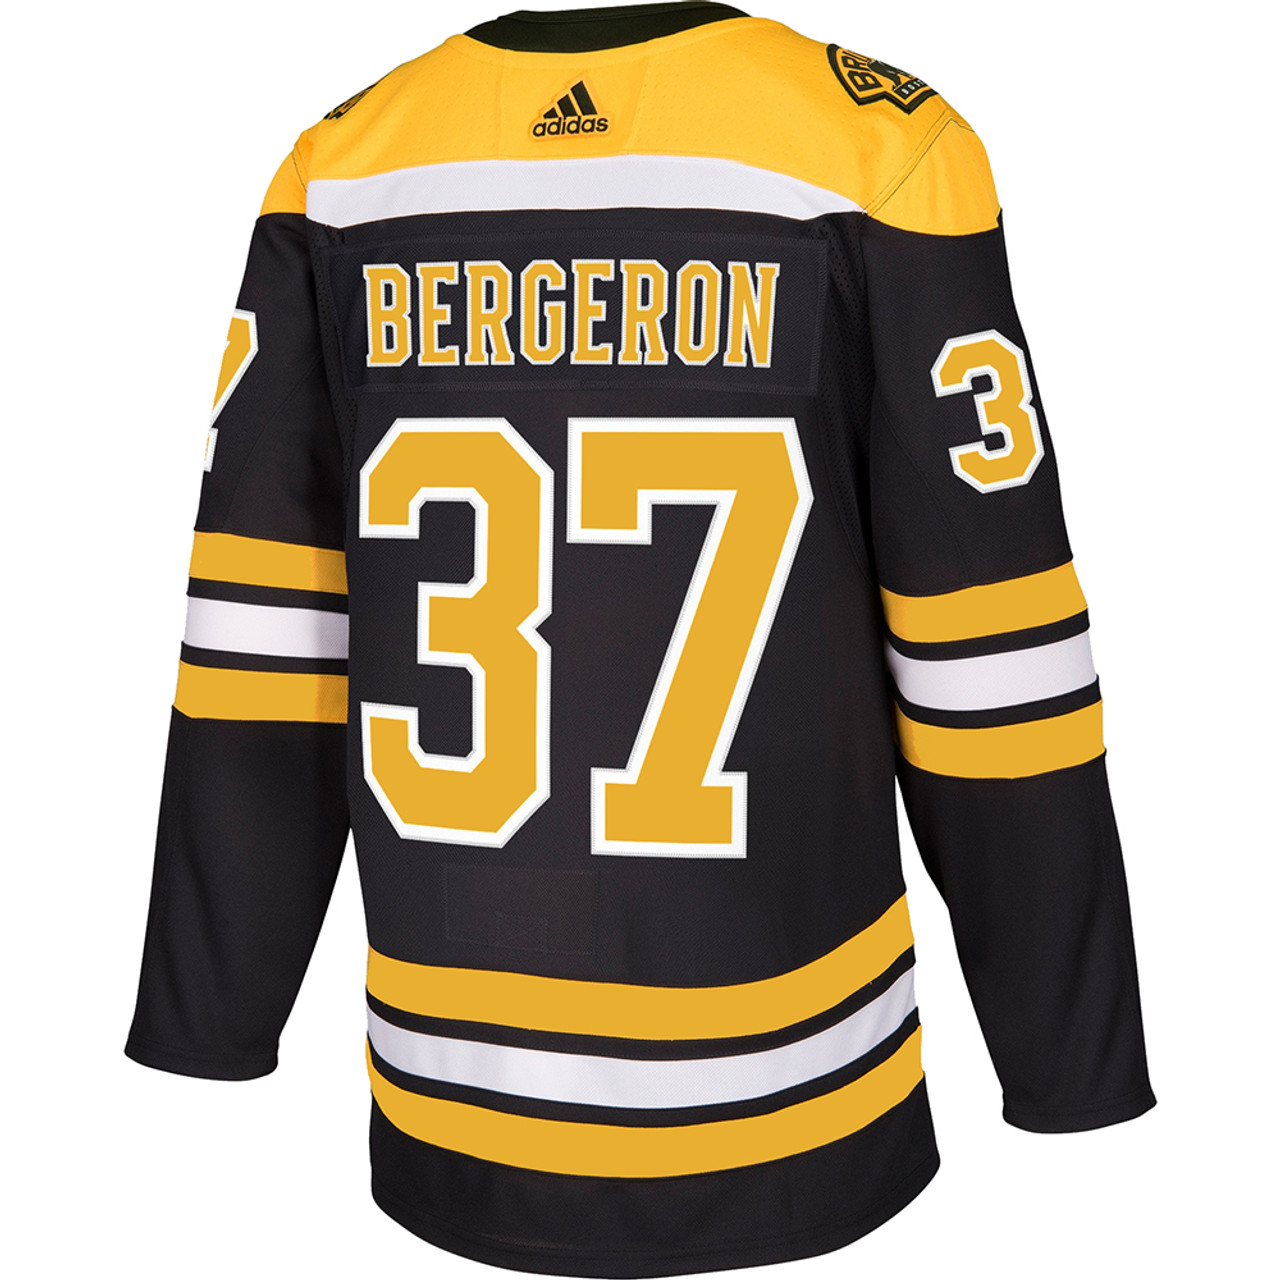 Bergeron adidas Authentic Pro Home Jersey